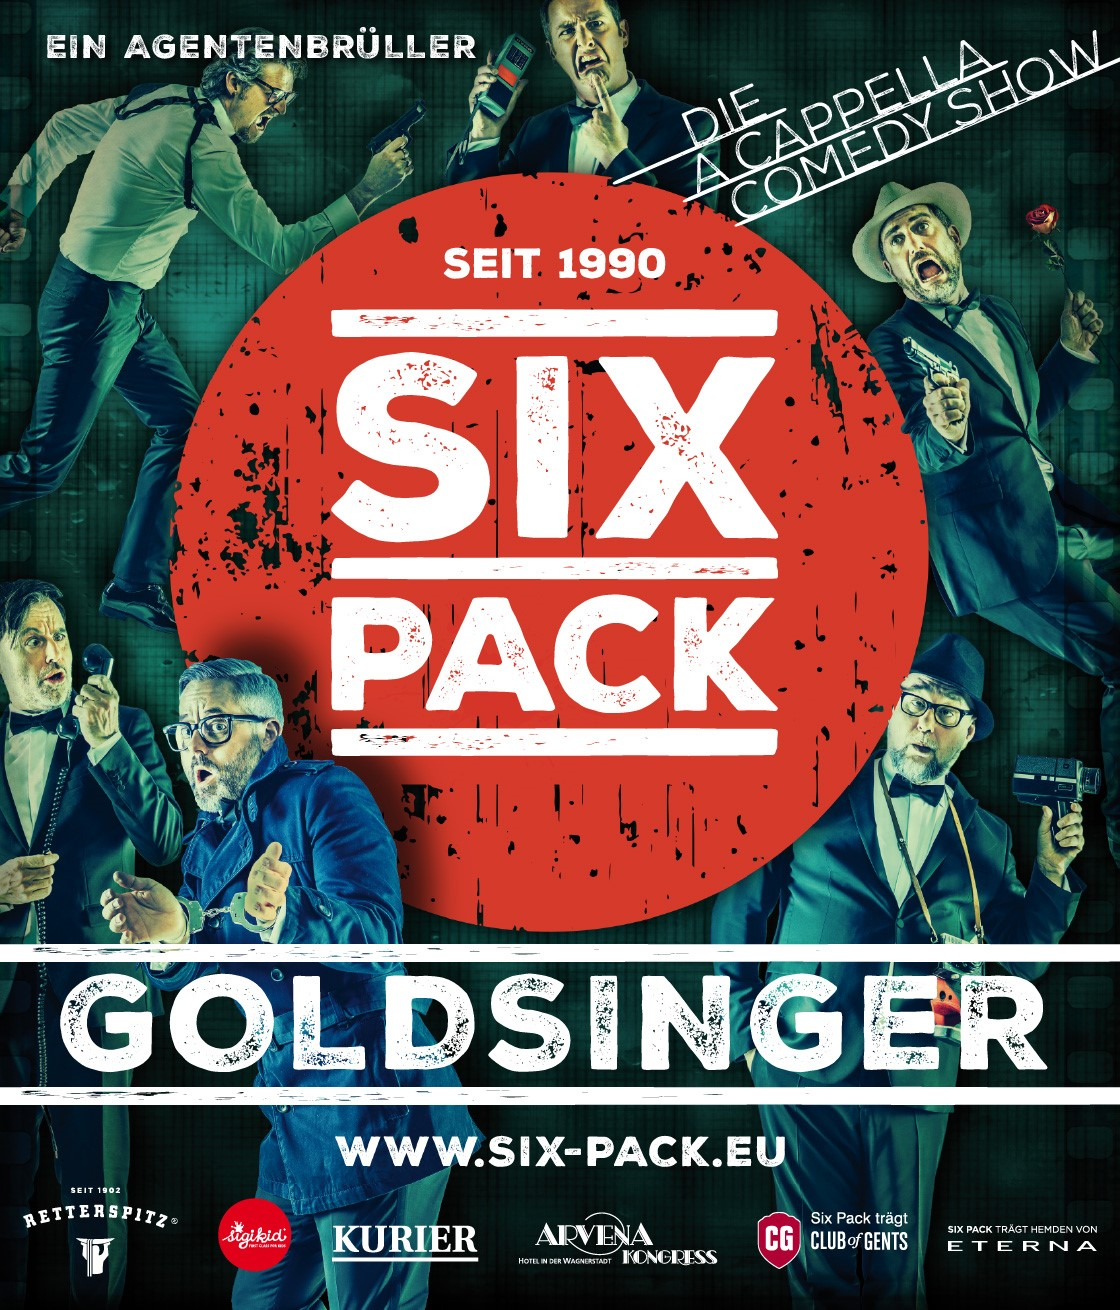 Image for SIX PACK - DIE A CAPPELLA COMEDY SHOW //